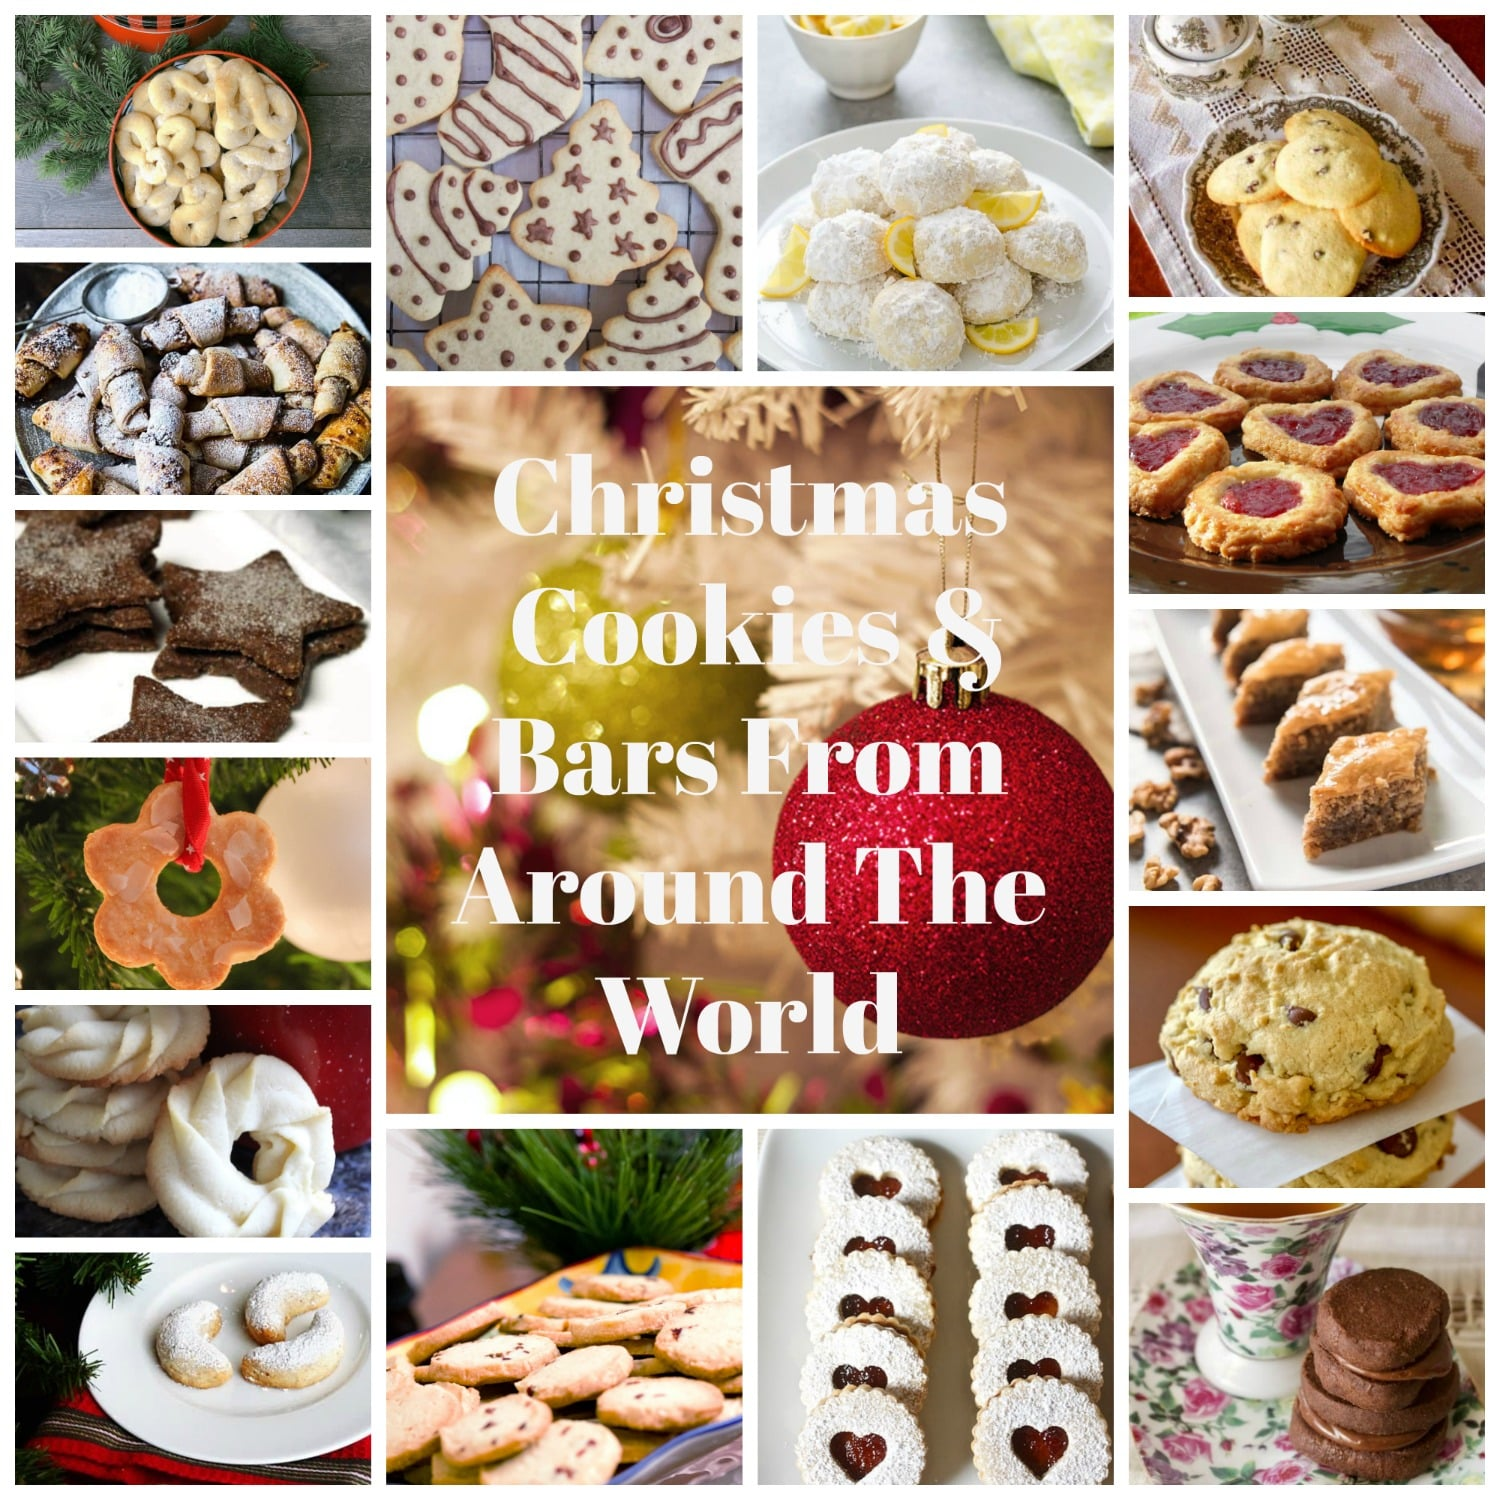 Christmas Cookies & Bars From Around The World- America is baking cookies for the holidays. To honor the tradition I decided to put together a collection of cookie recipes from all over the world.